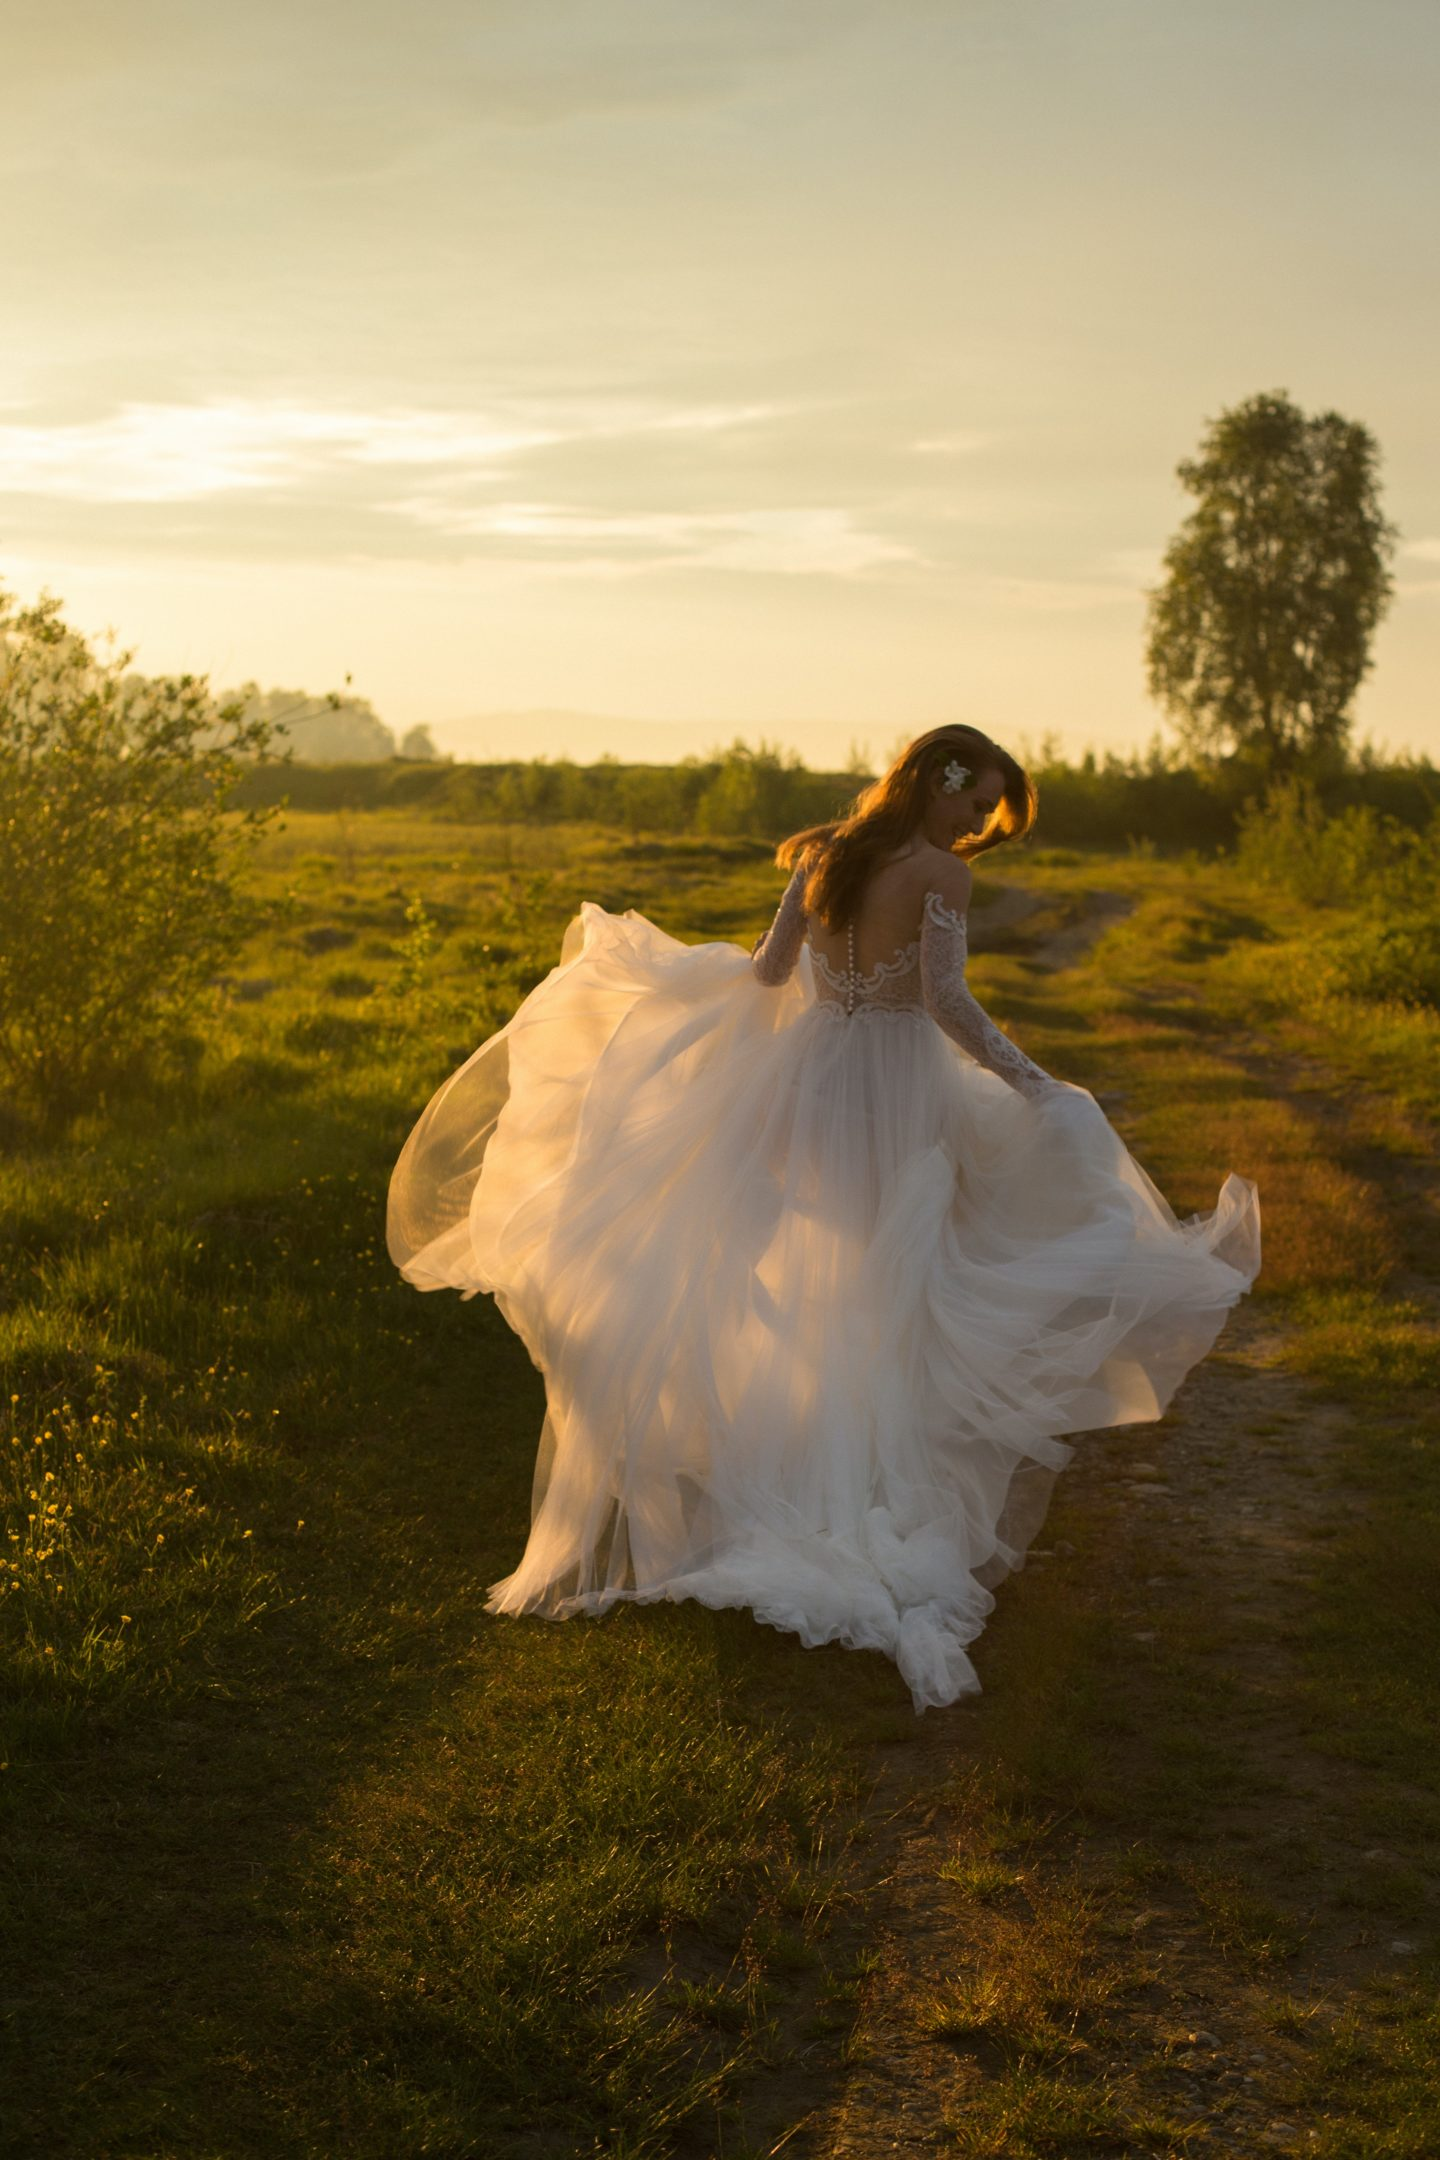 5 Tips To Find Your Perfect Vintage or Pre-Loved Wedding Dress